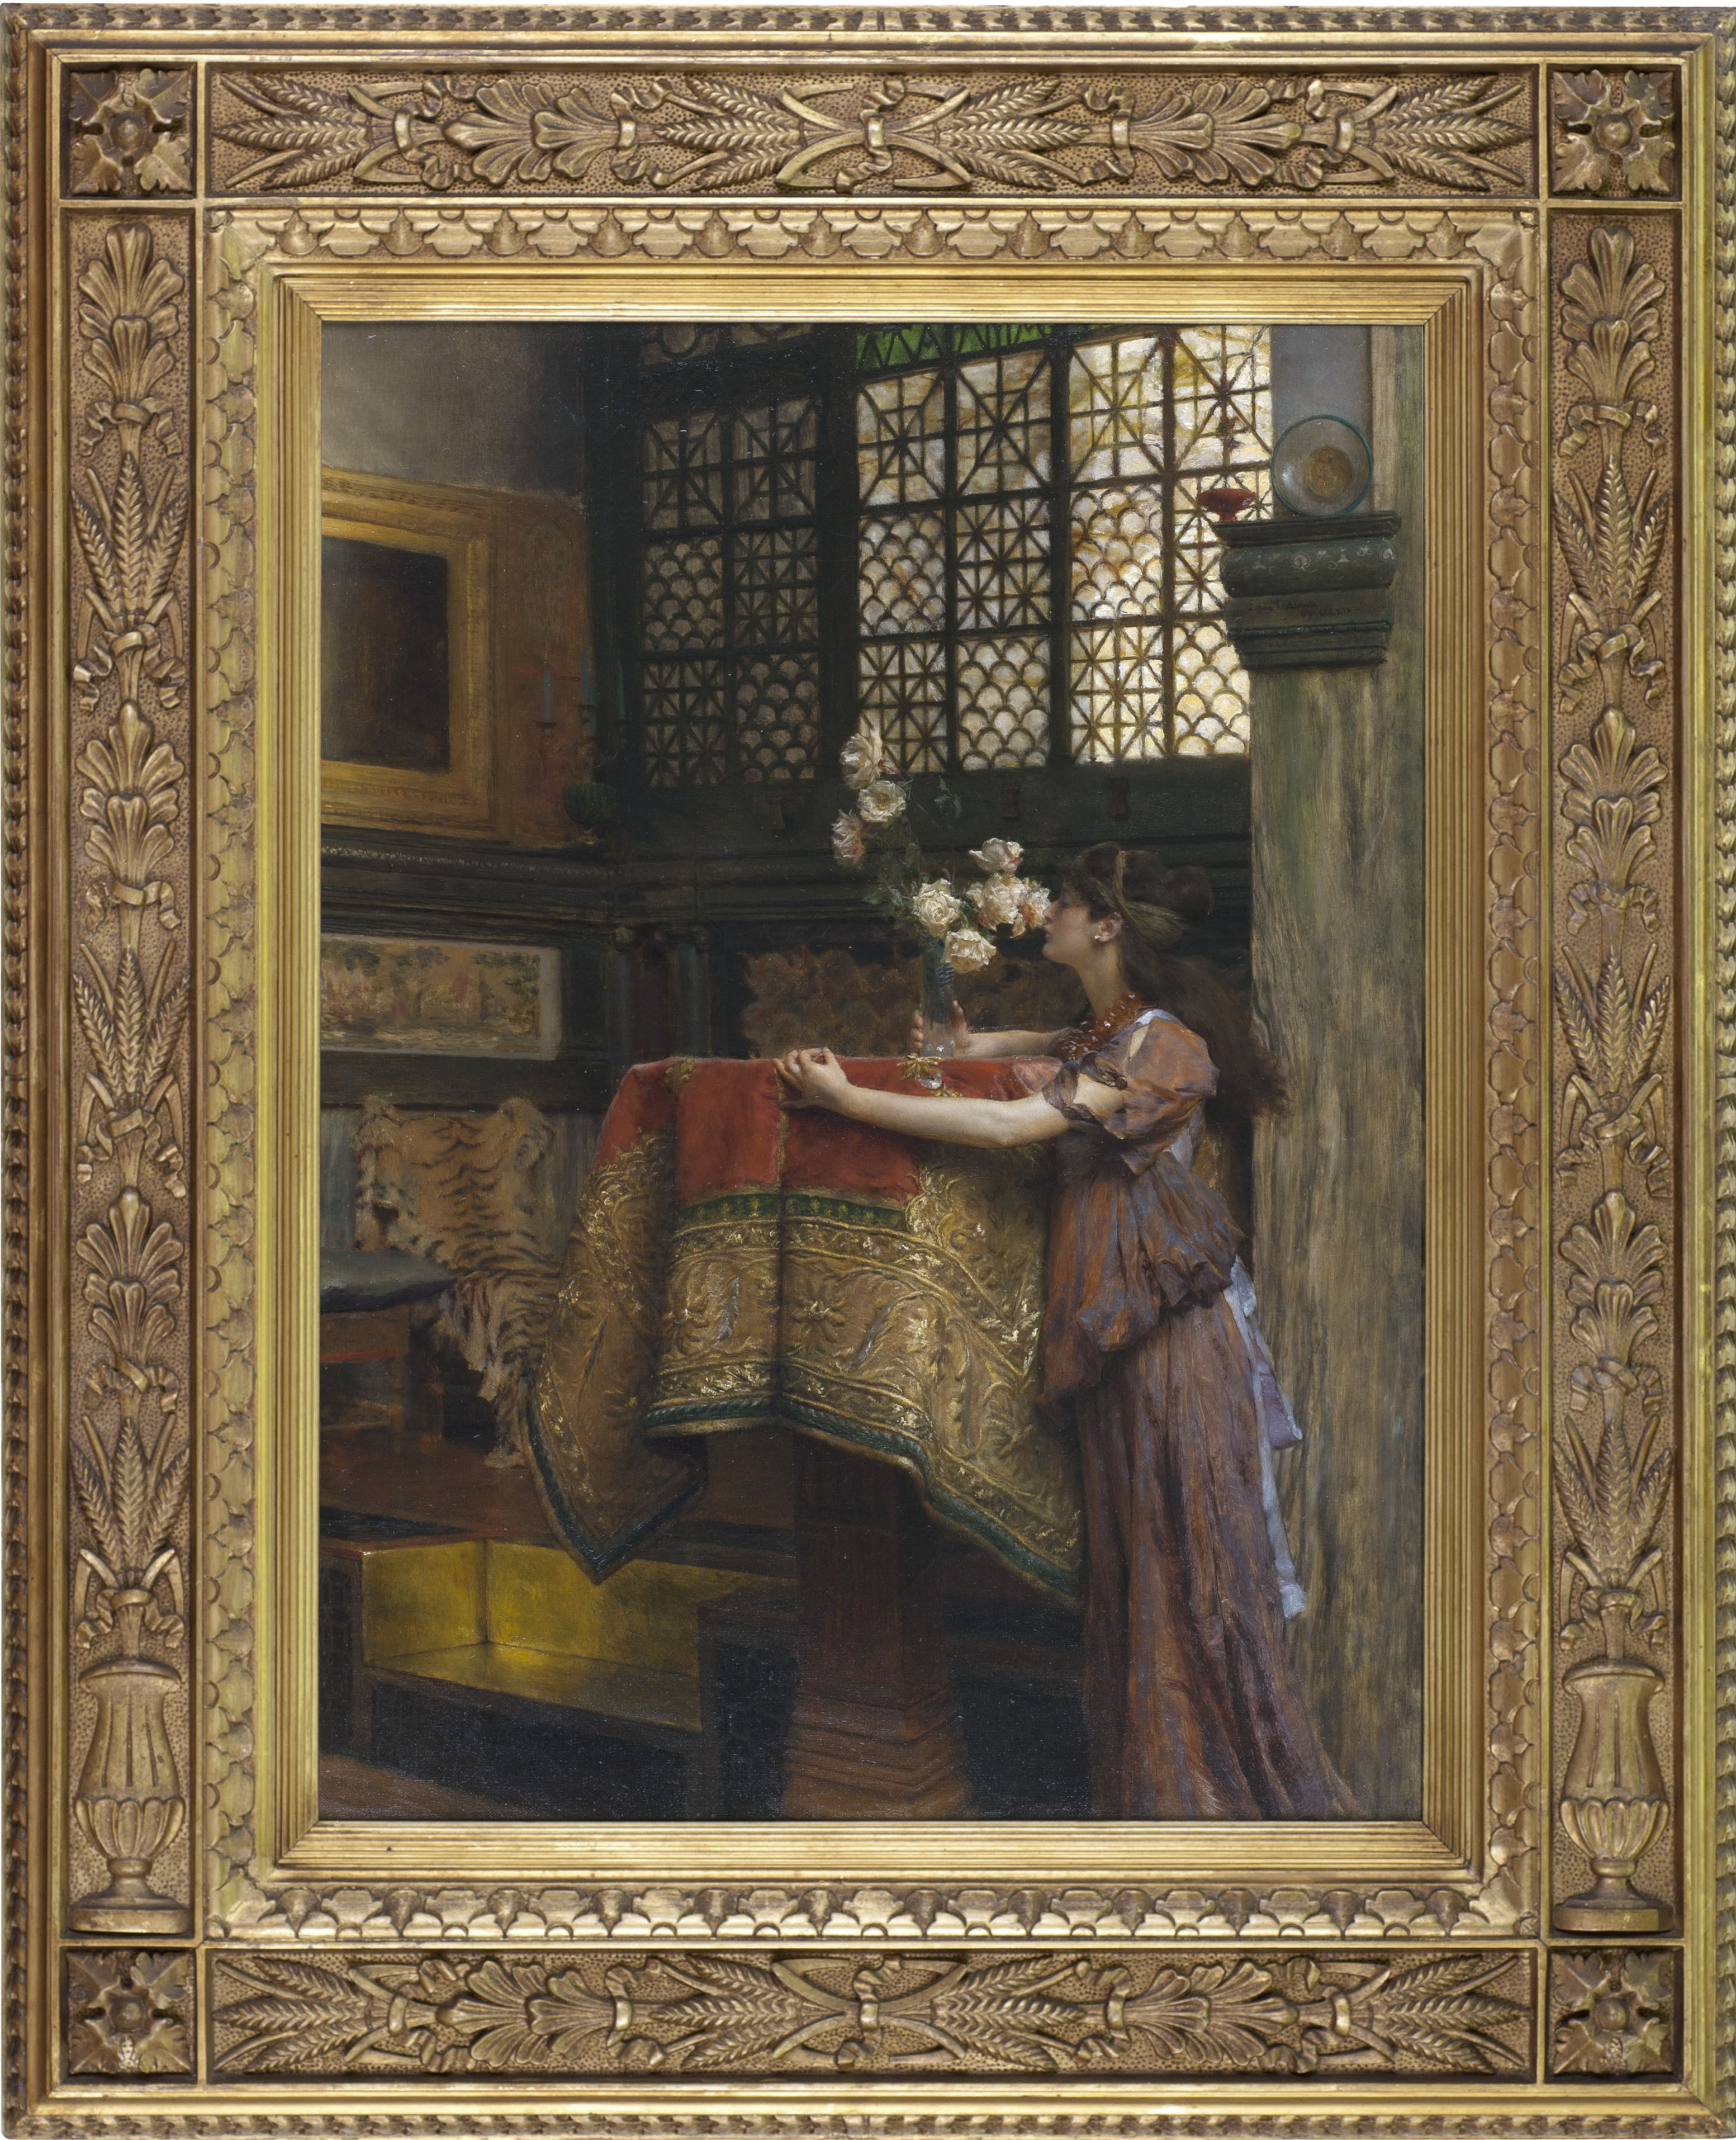 Painting Alma Tadema, 'In my Studio', with a beautiful frame, 1893